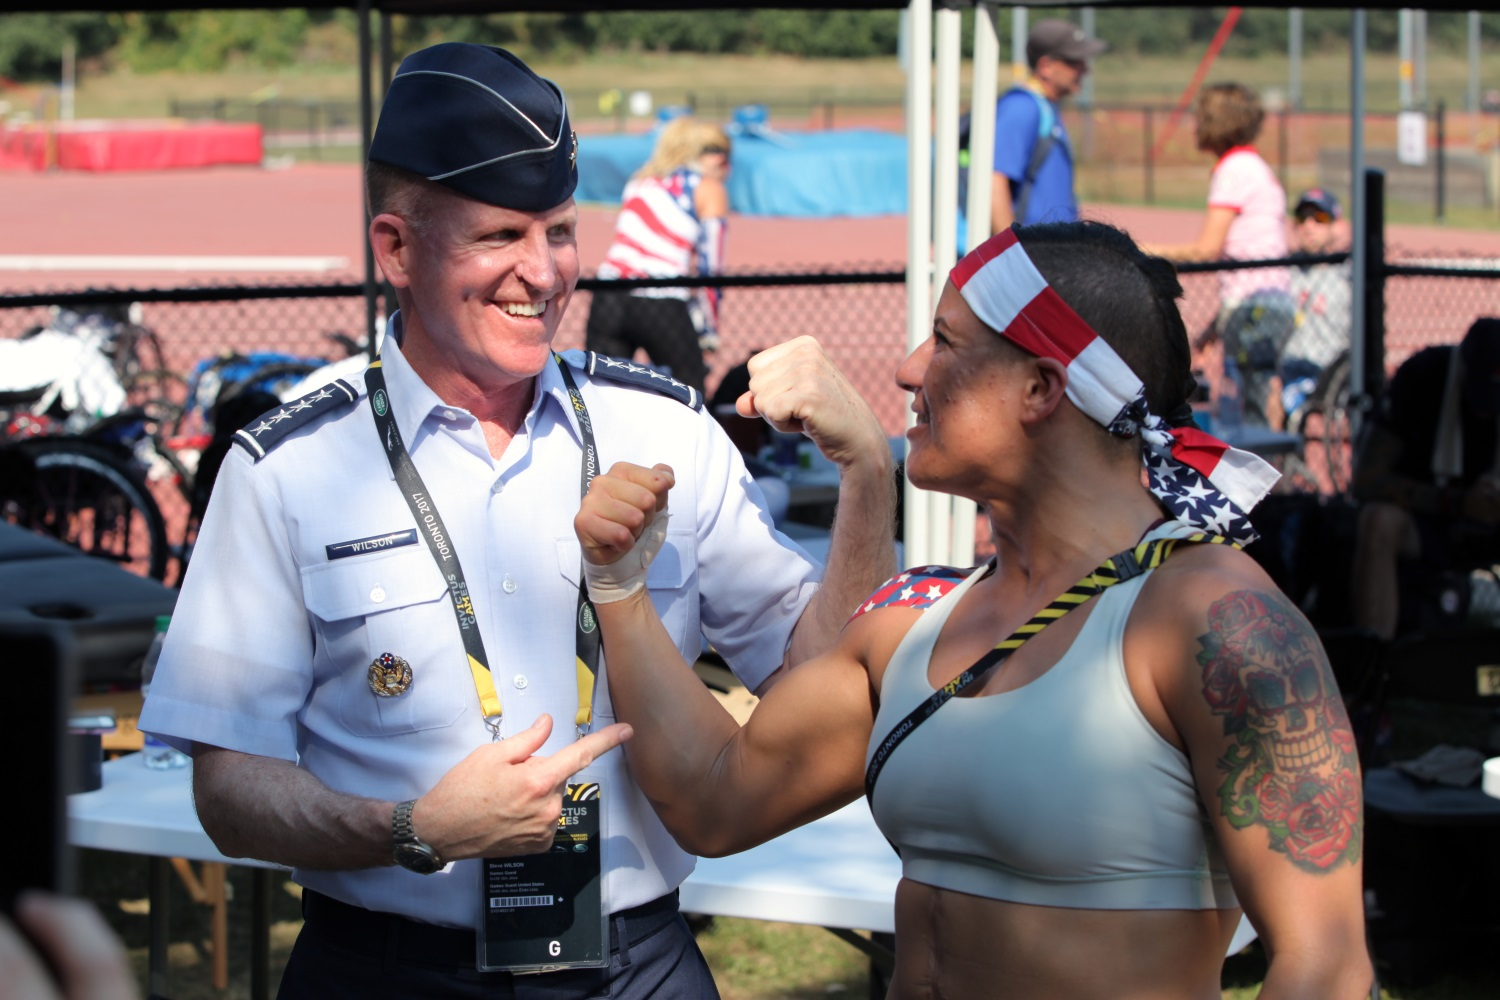 Vice Chief of Staff of the Air Force Gen. Stephen W. Wilson talks with Staff. Sgt. Sebastiana Lopez-Arellano at York Lions Stadium in Toronto, Canada, on Sept. 24, 2017. The Invictus Games, Sept. 23-30, is an international, Paralympic-style, multi-sport event, created by Prince Harry of Wales, in which wounded, injured or sick armed services personnel and their associated veterans take part in sports including wheelchair basketball, wheelchair rugby, sitting volleyball, archery, cycling, wheelchair tennis, powerlifting, golf, swimming and indoor rowing. (Staff Sgt. Daniel Luksan/Army)